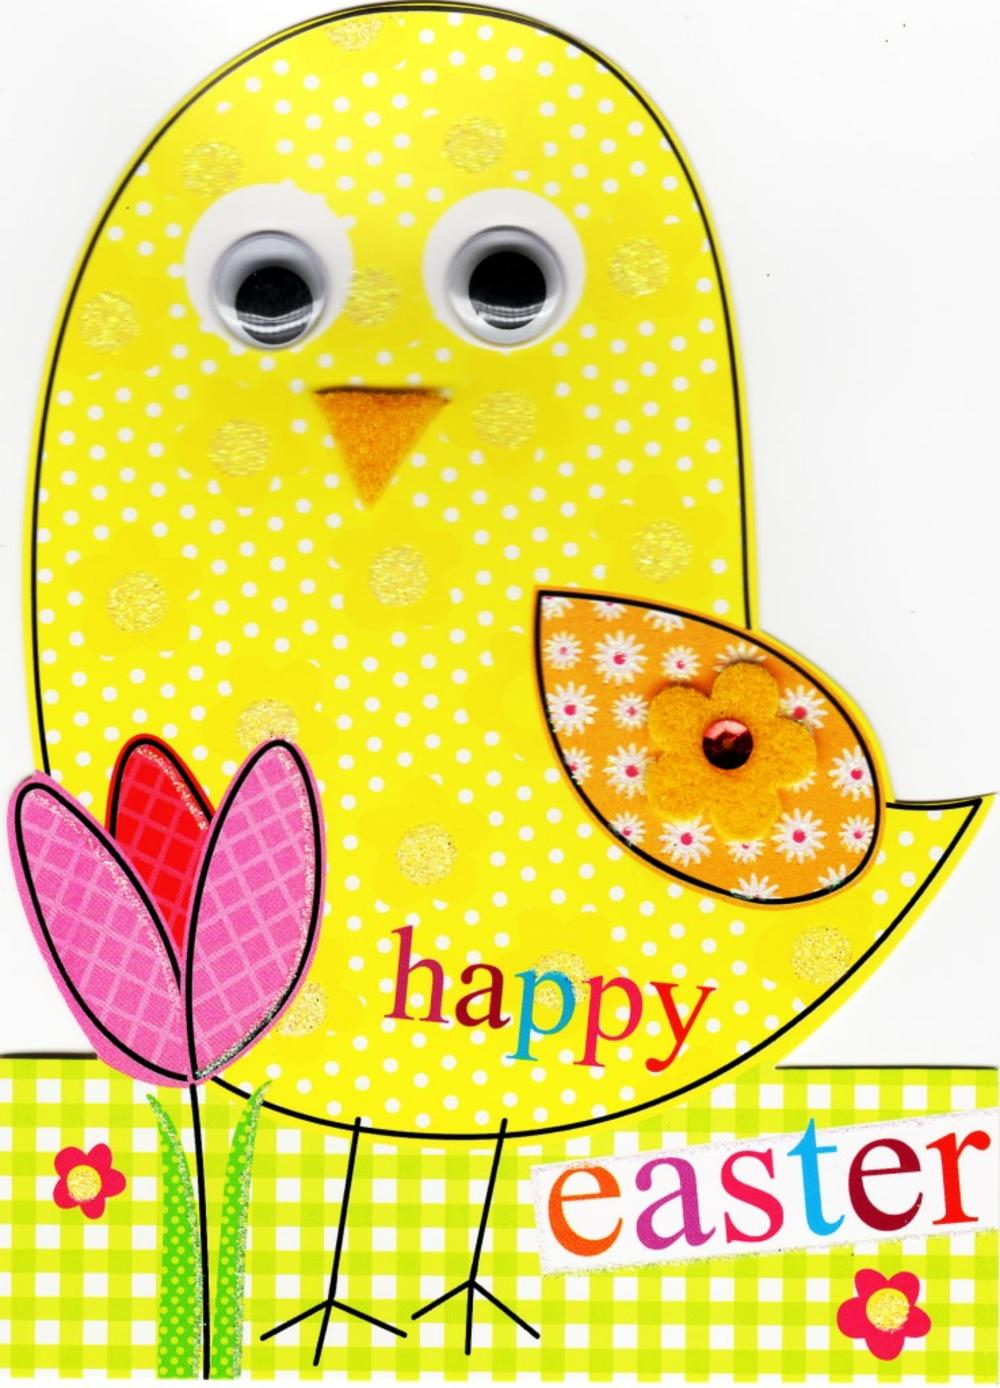 Cute Chick Shaped Easter Greeting Card